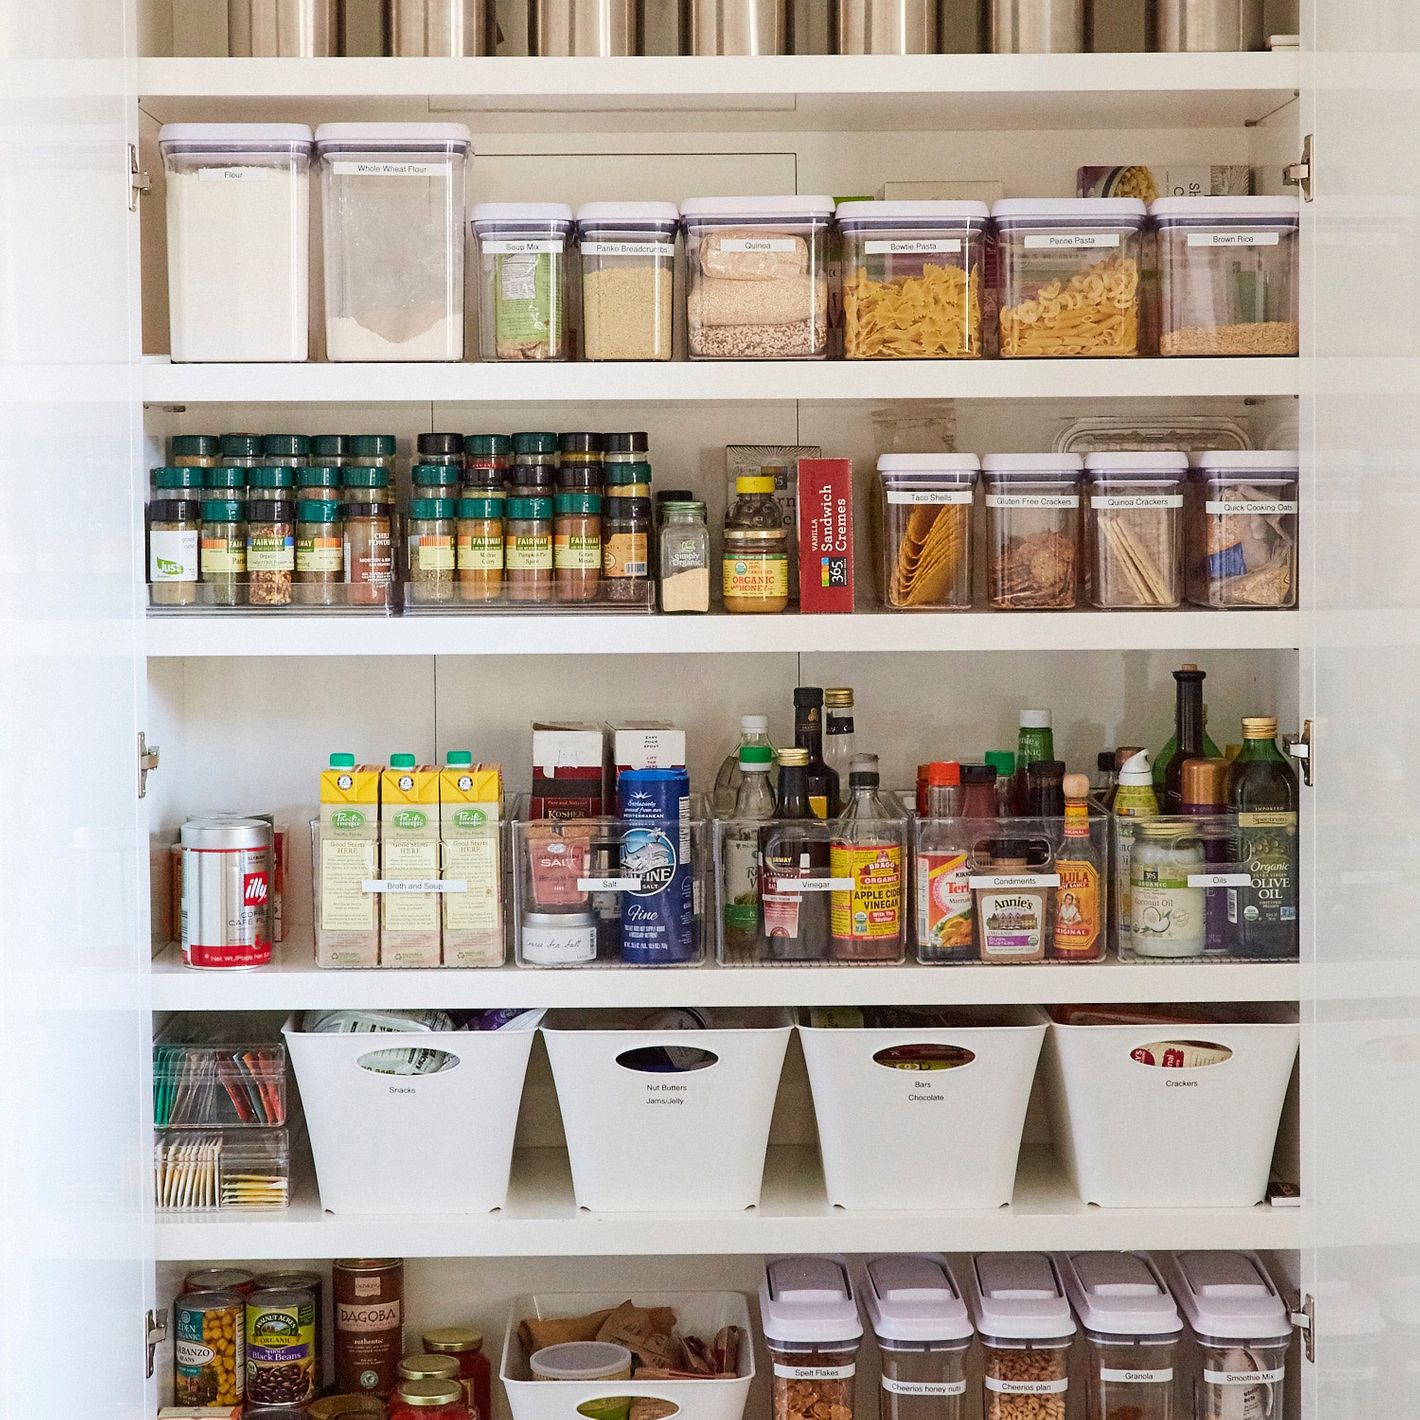 organization de and showroom everyday bhm new pantry the organizing amandas i homewood brand amanda get in clutter said organized sb a products home birmingham at love